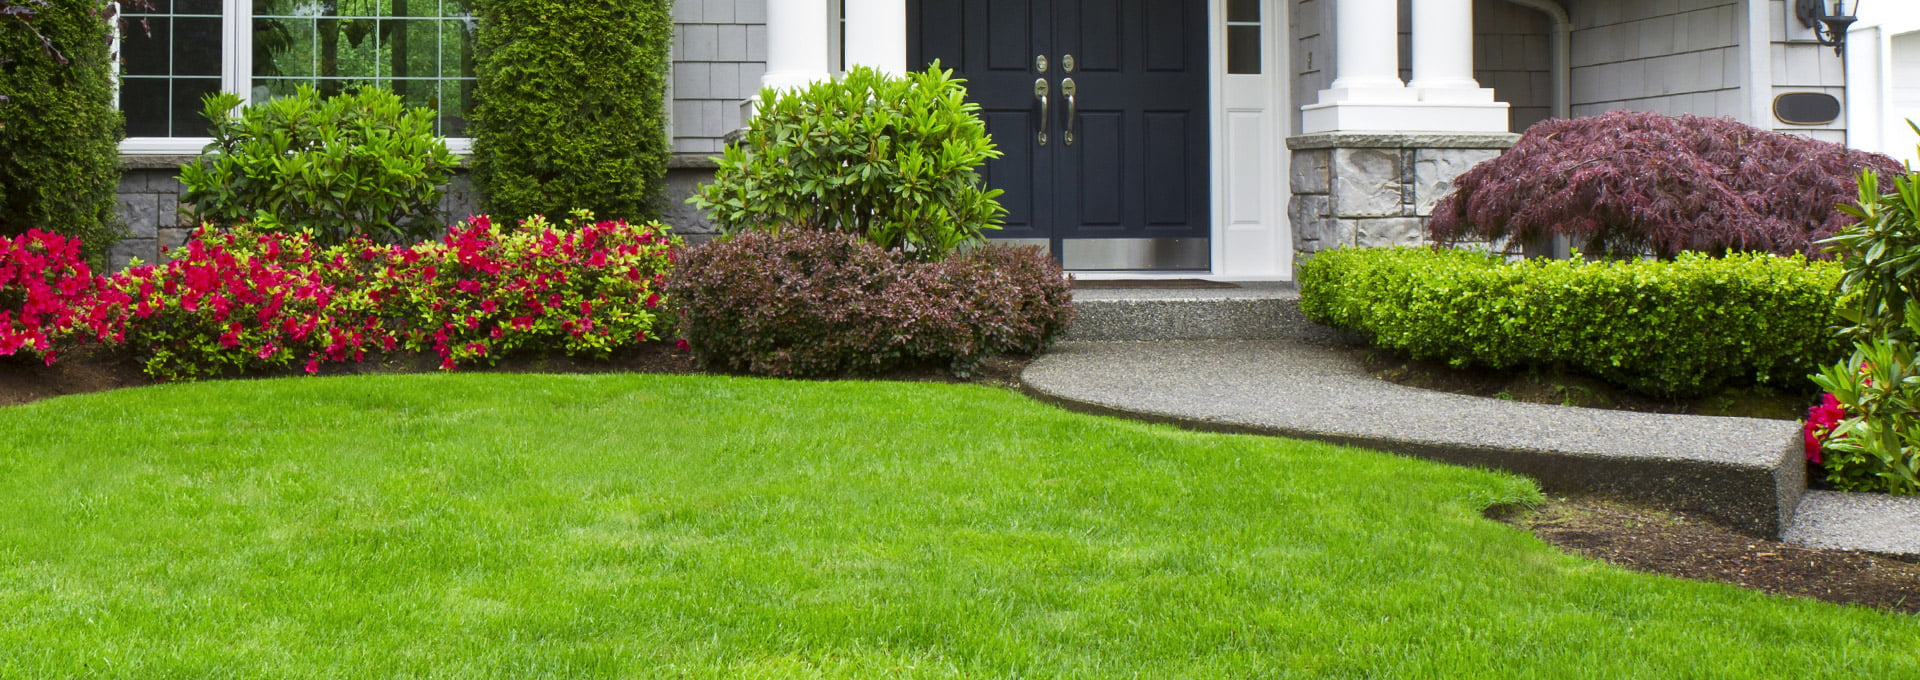 NJ Lawn and Plant Care from High Tech Landscapes